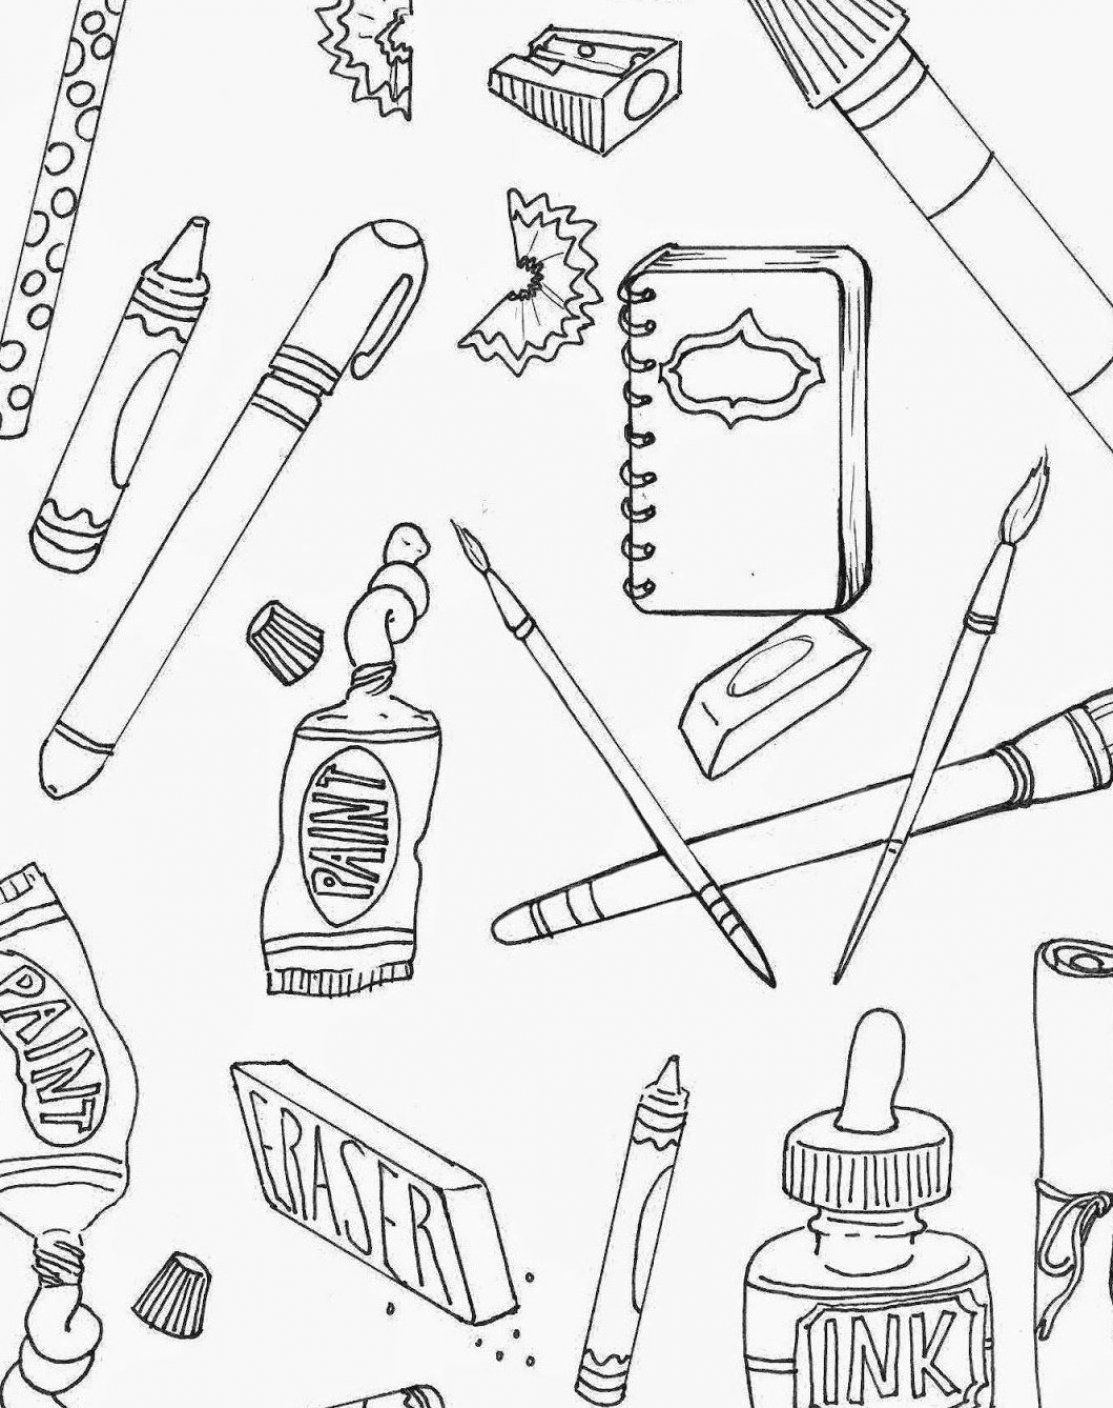 Art Supplies Coloring Pages Art Supplies Drawing Art Supplies Picture Picture Of Art Supplies Art Supplies Drawing Coloring Pages School Coloring Pages